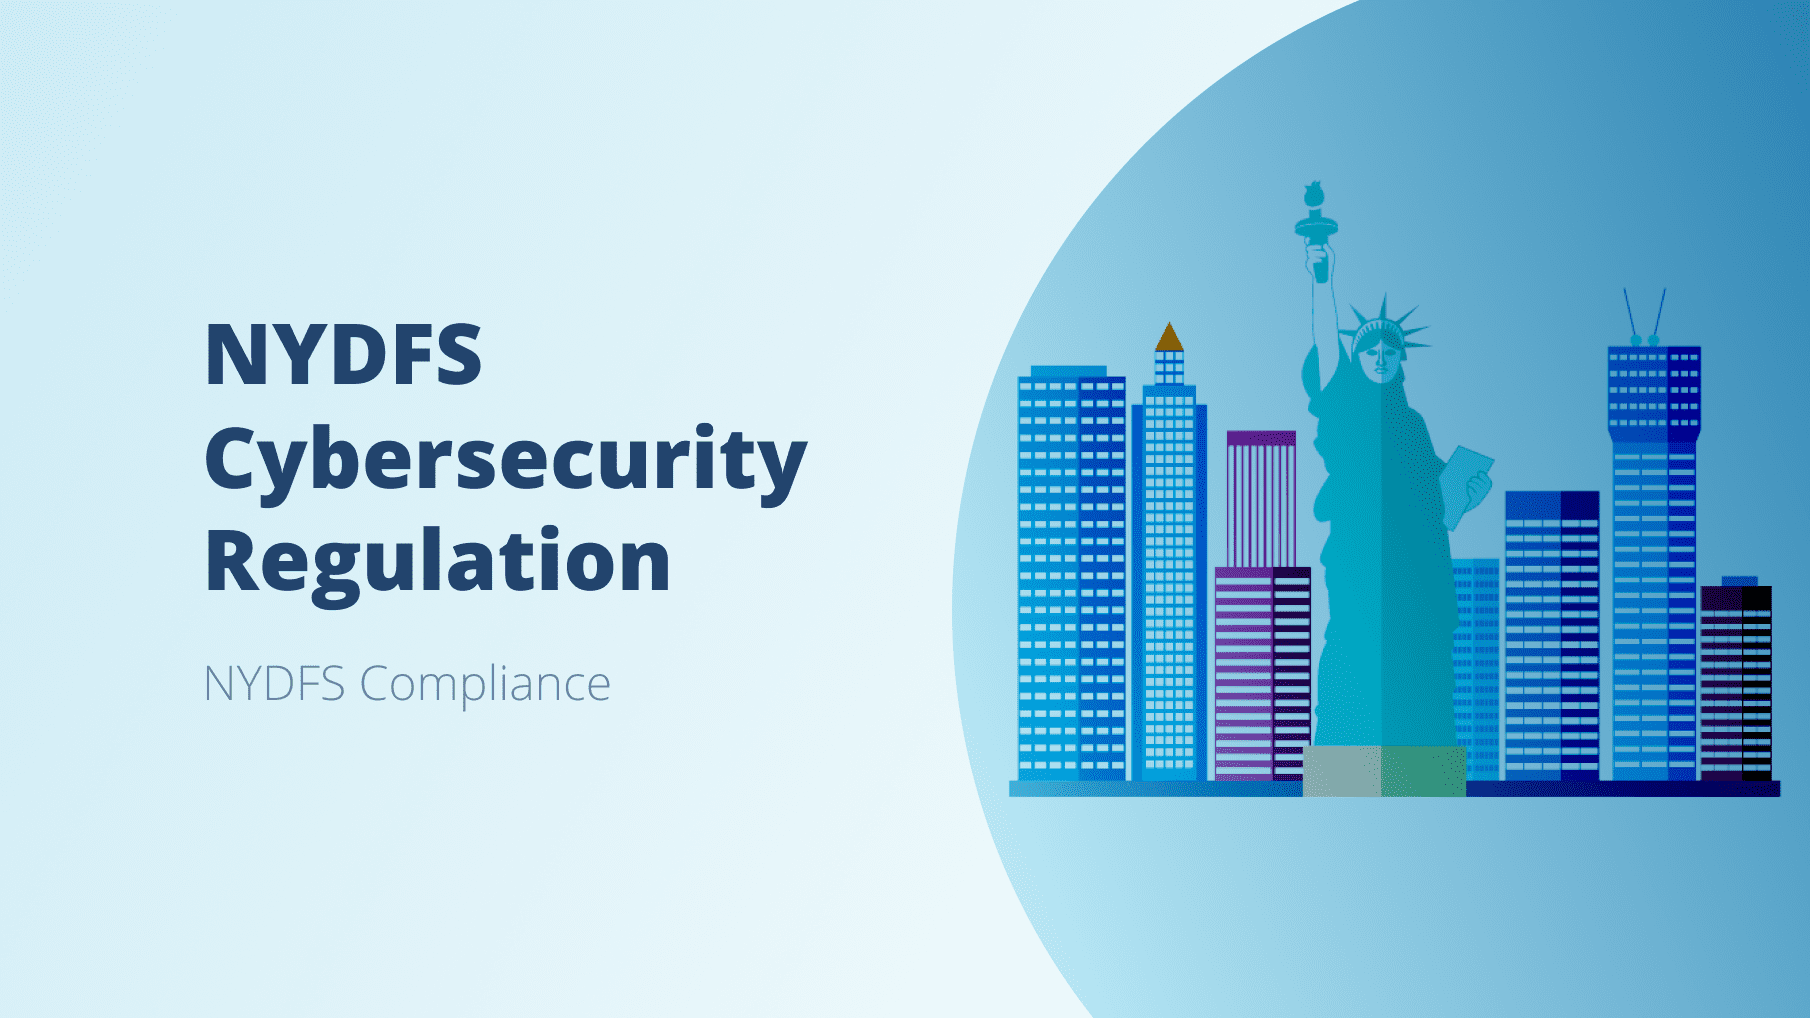 NYDFS Cybersecurity Regulation